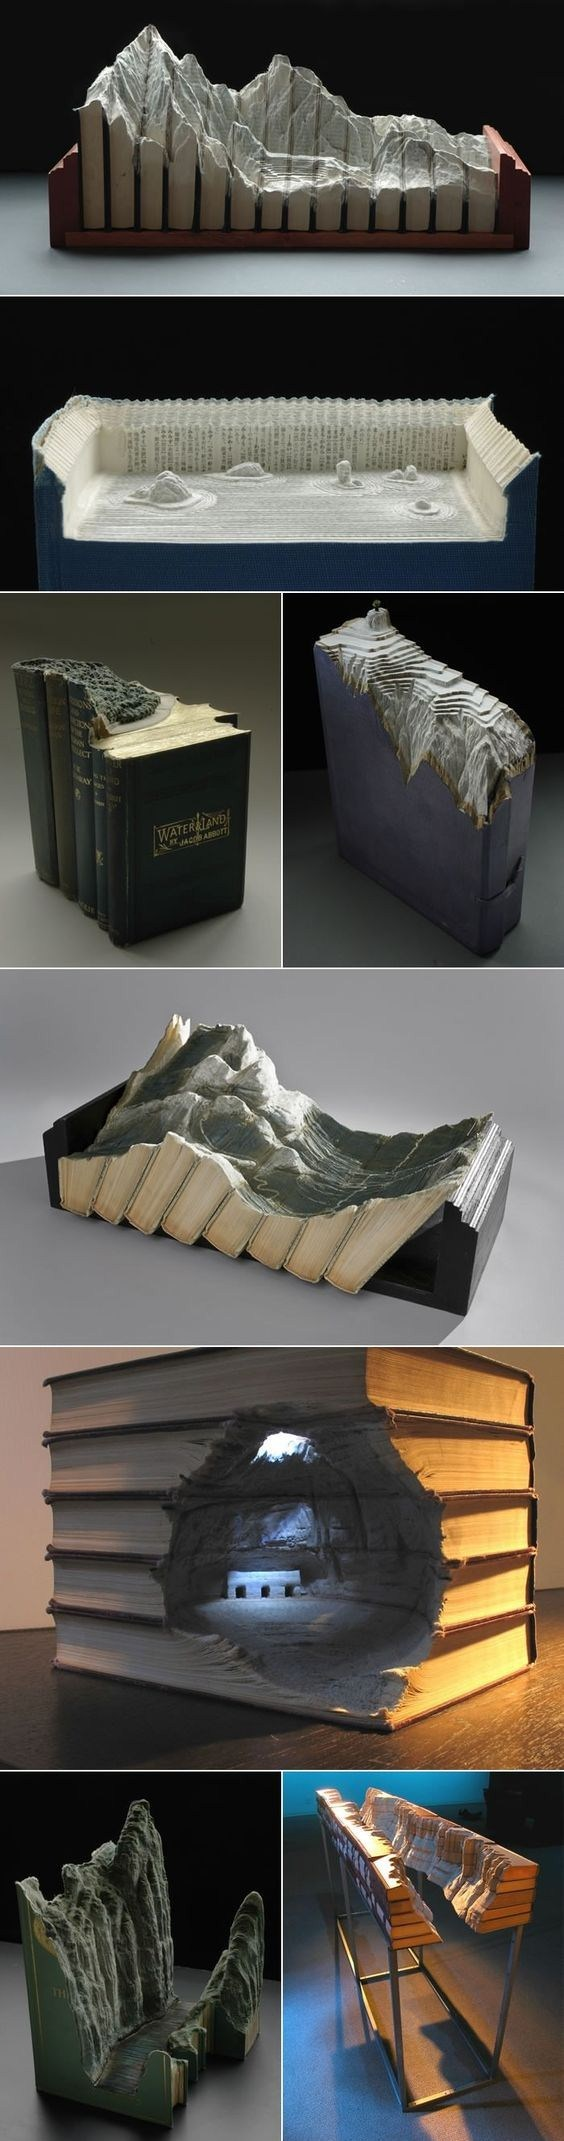 carving_book_art01